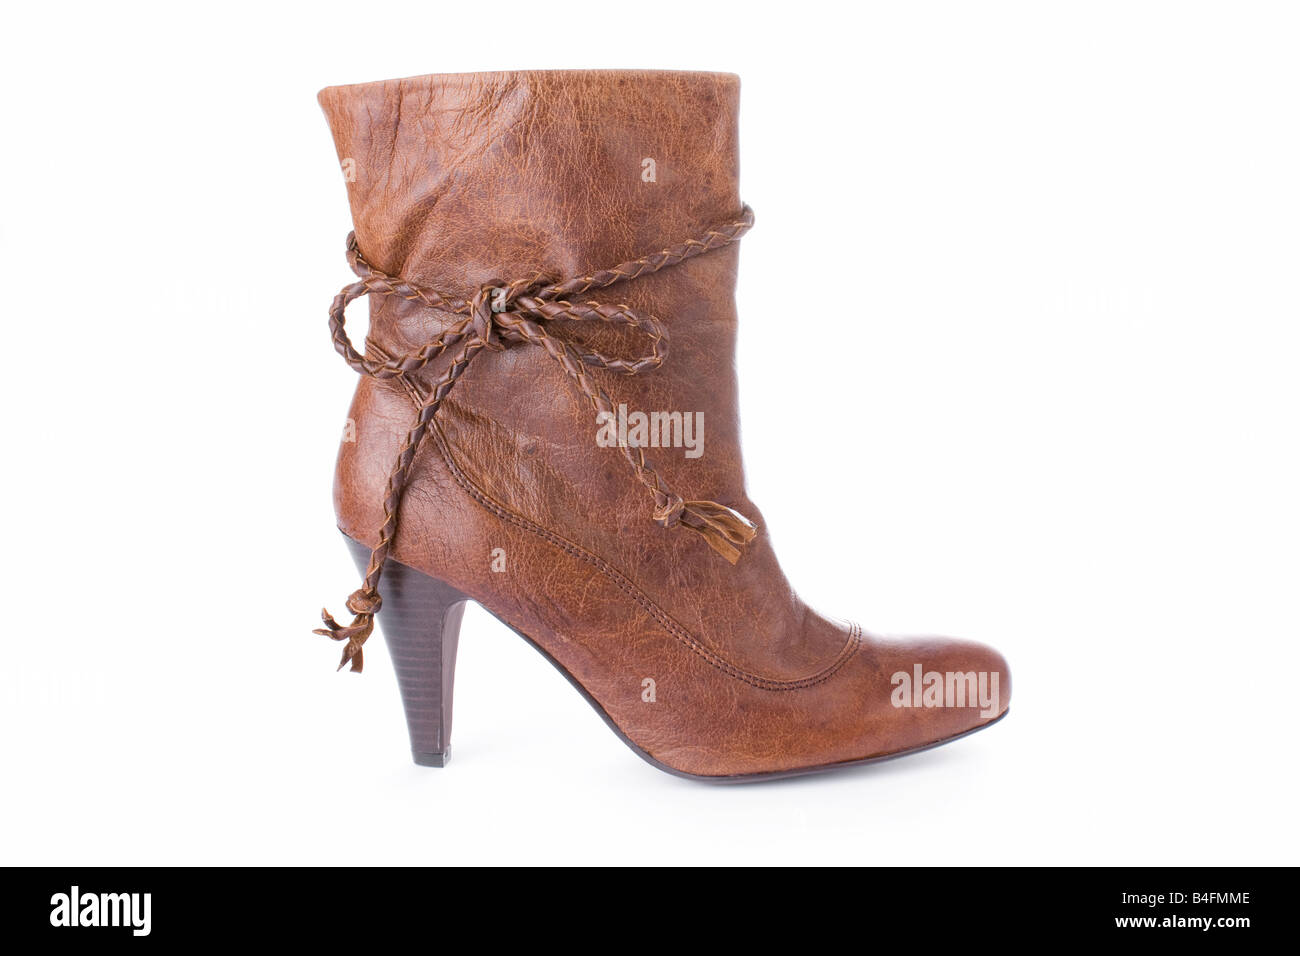 Hig heels half boot isolated on white background - Stock Image